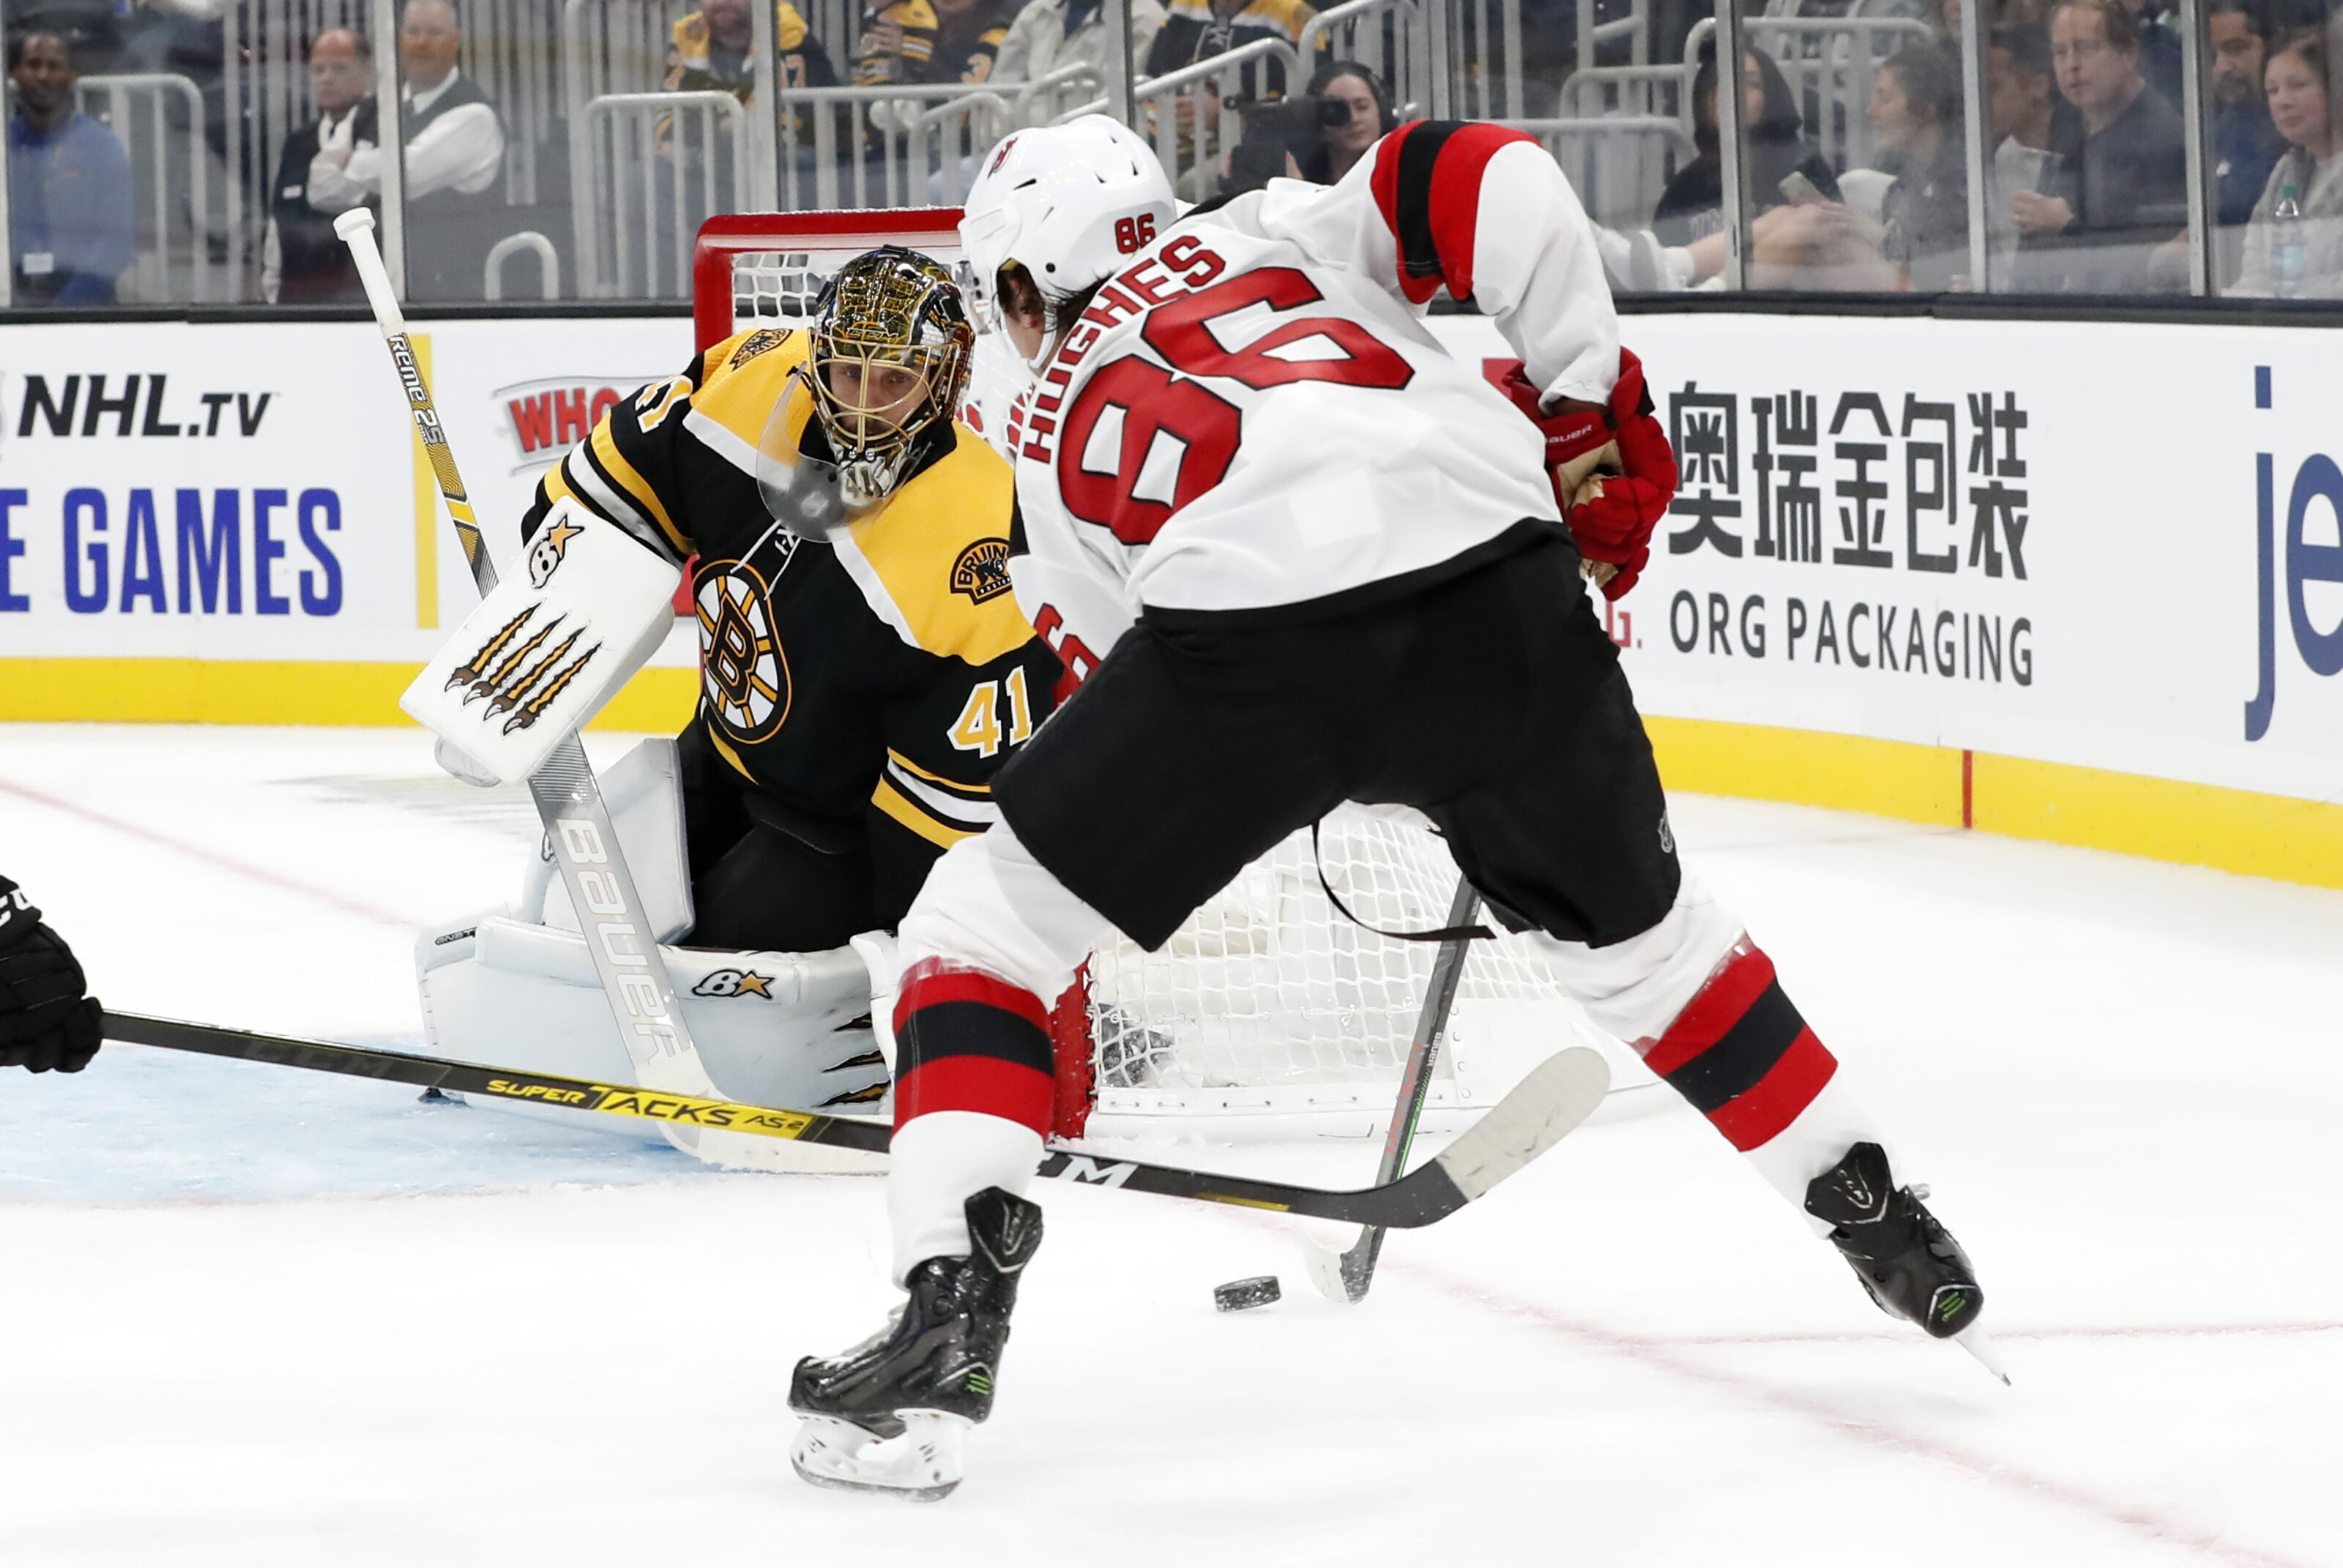 New Jersey Devils: East Champions Coming To Newark - Pucks and Pitchforks